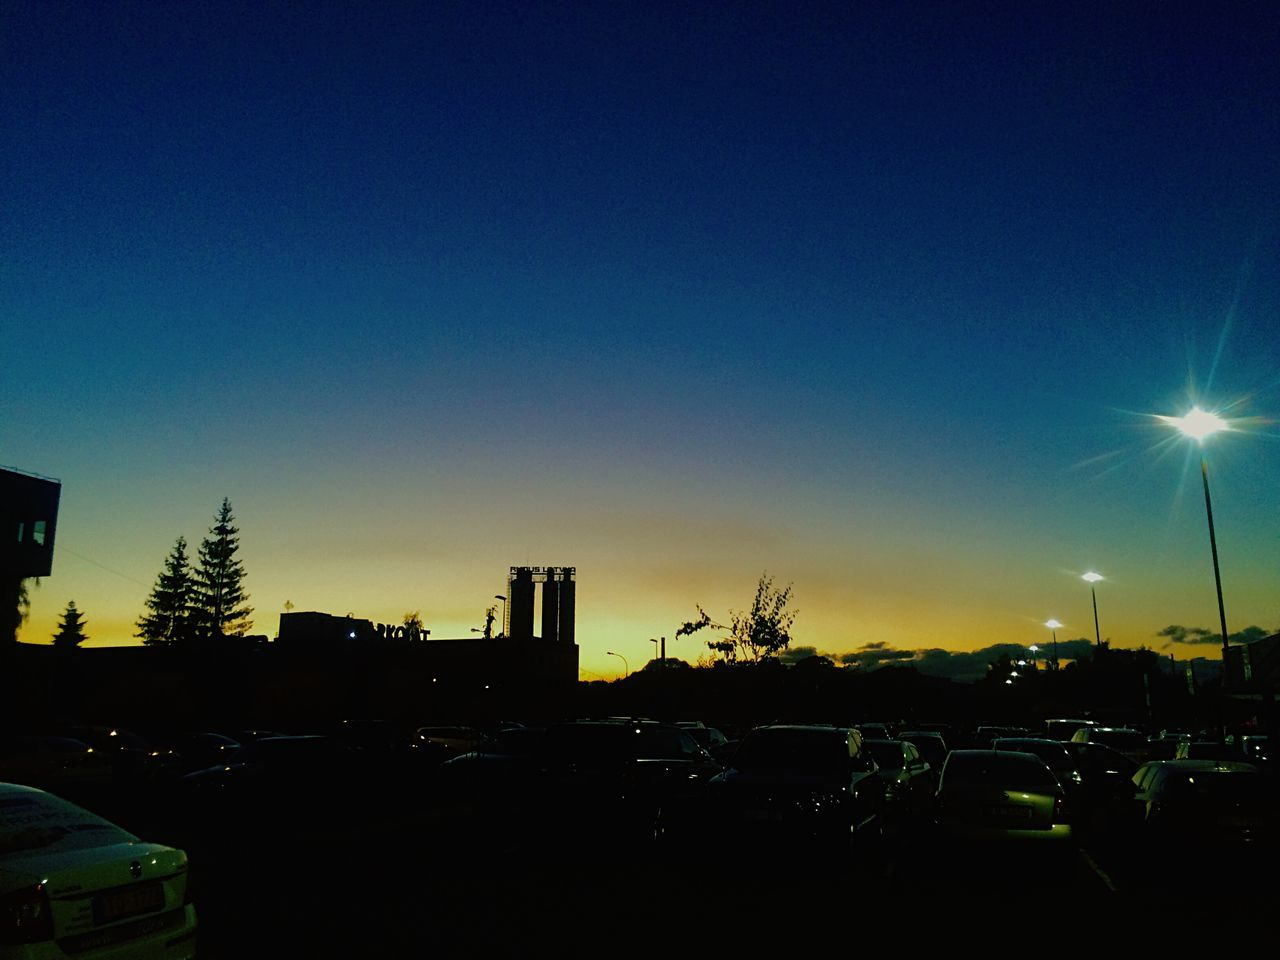 car, land vehicle, transportation, building exterior, mode of transport, built structure, no people, architecture, blue, clear sky, sky, sunset, city, outdoors, illuminated, tree, nature, day